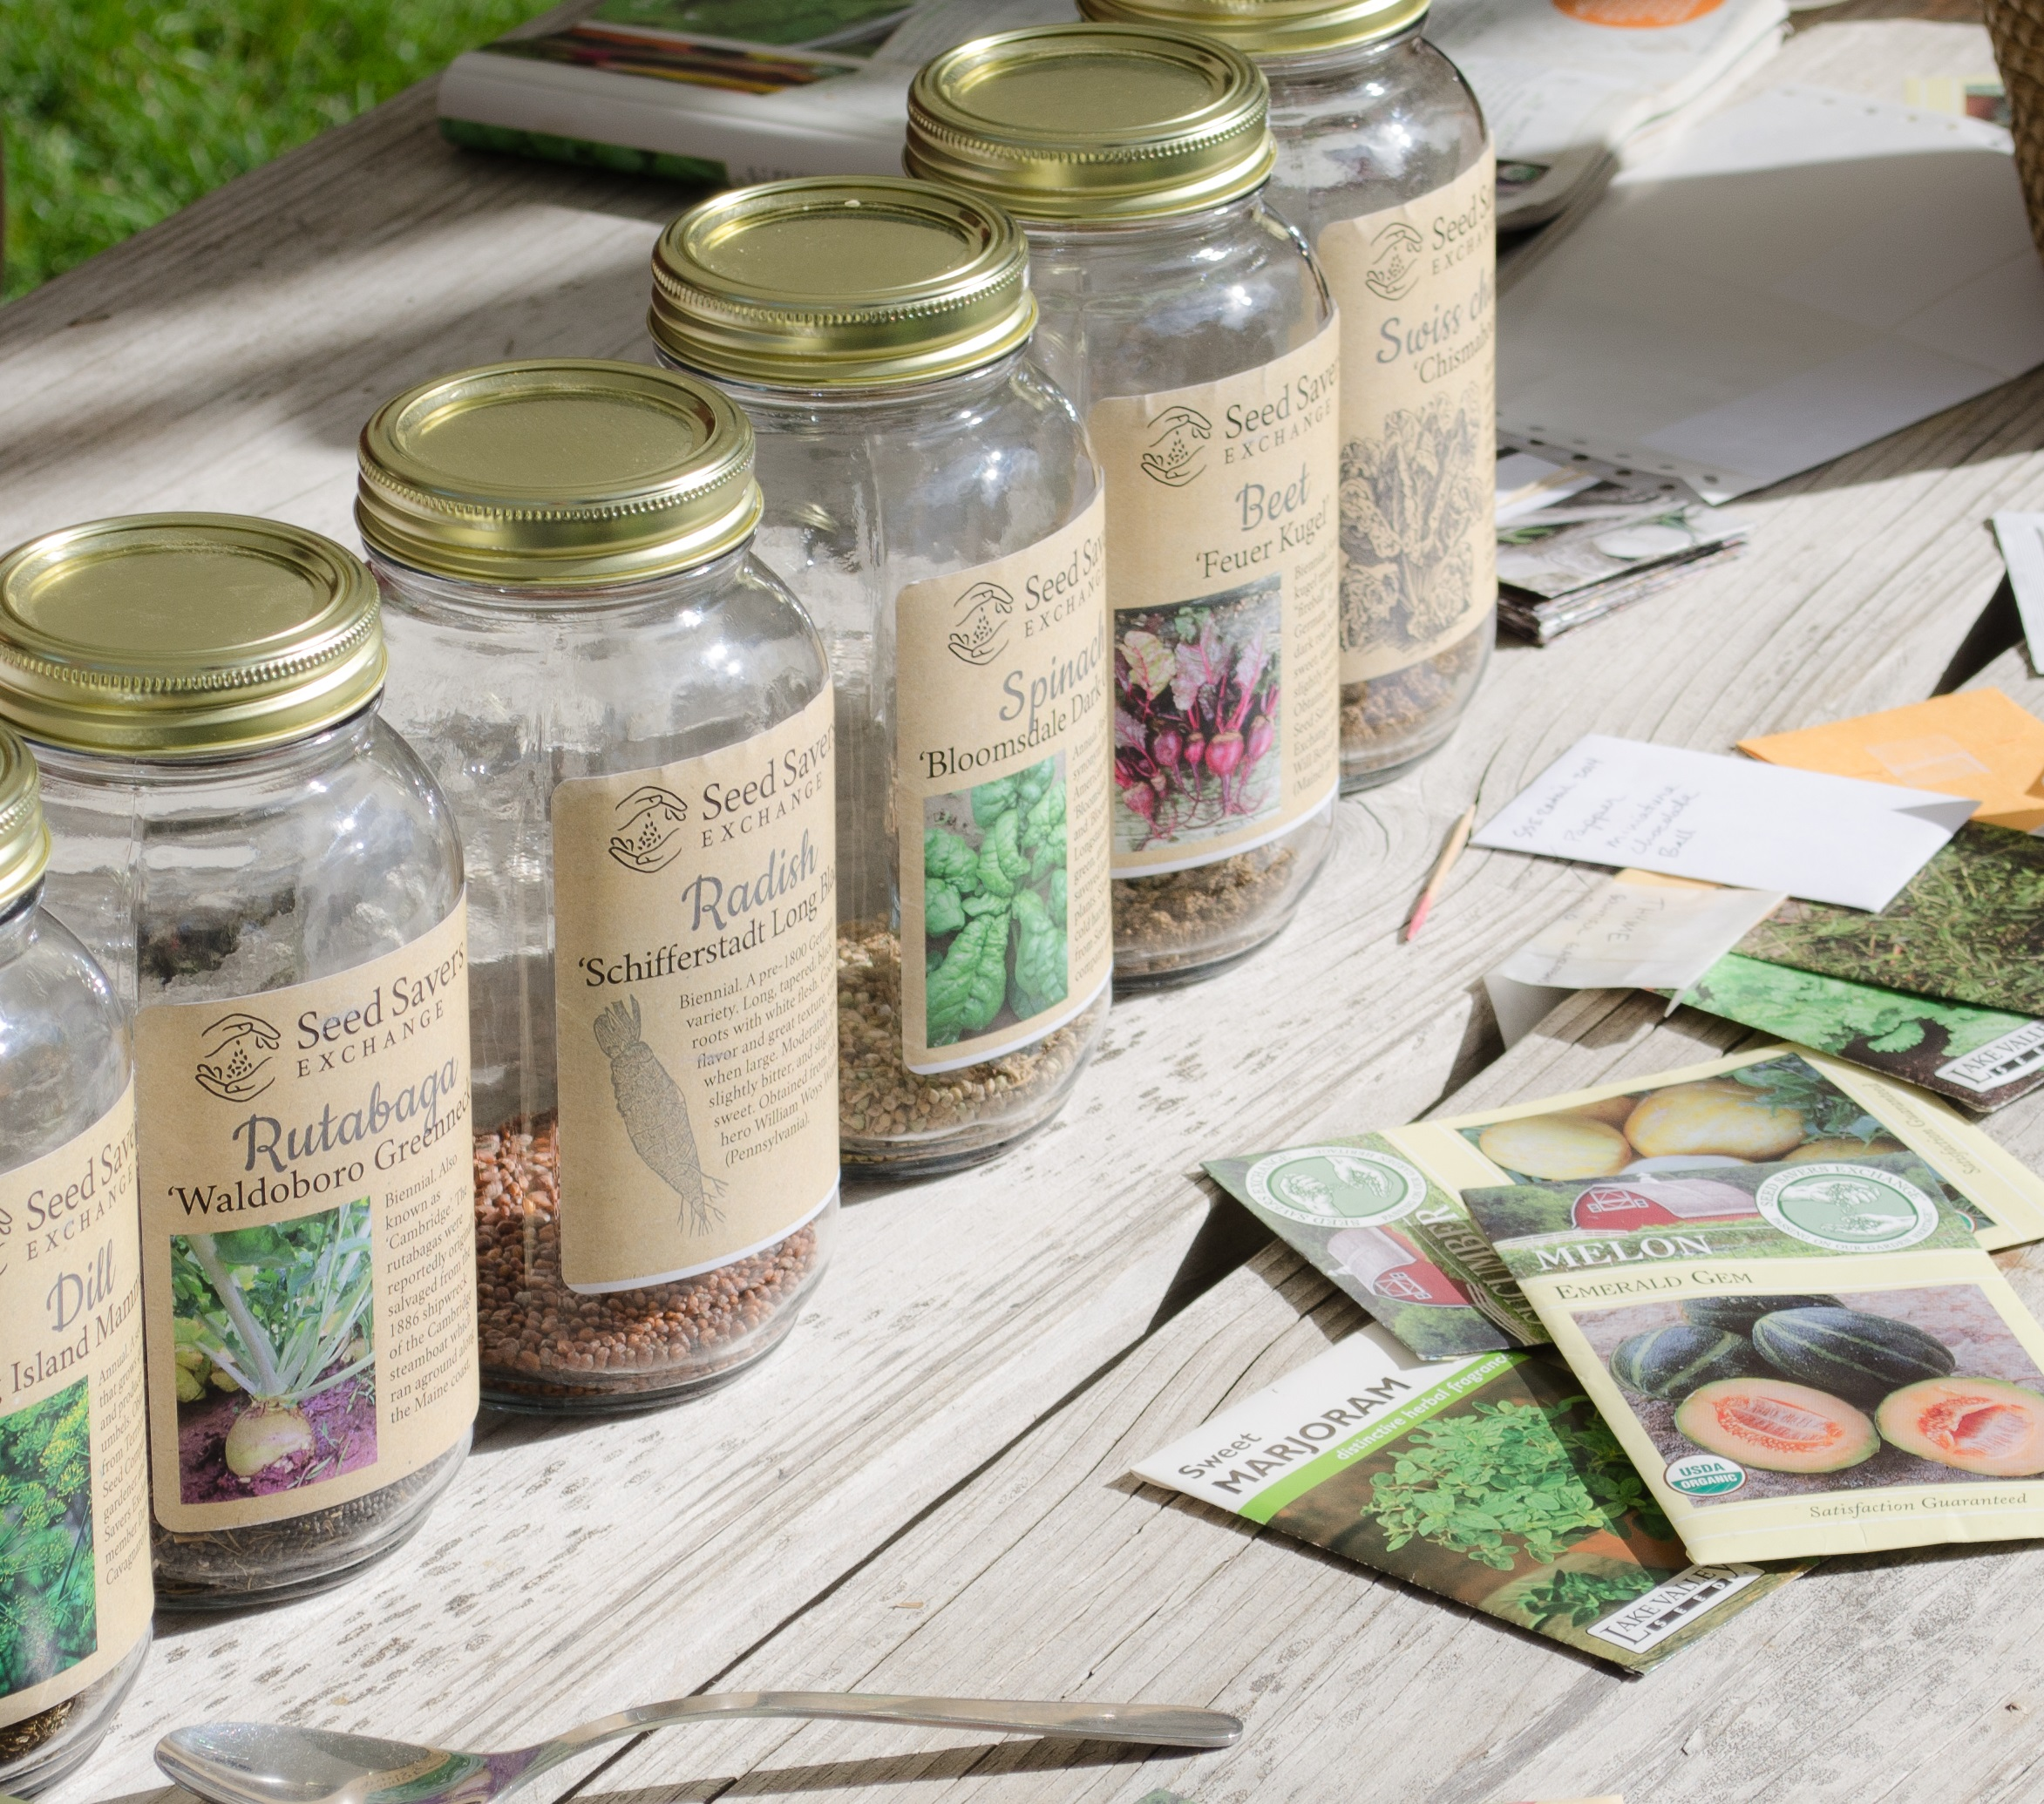 Packets and mason jars are among the containers used to display seeds at seed swaps. Plastic BagGies work well too.